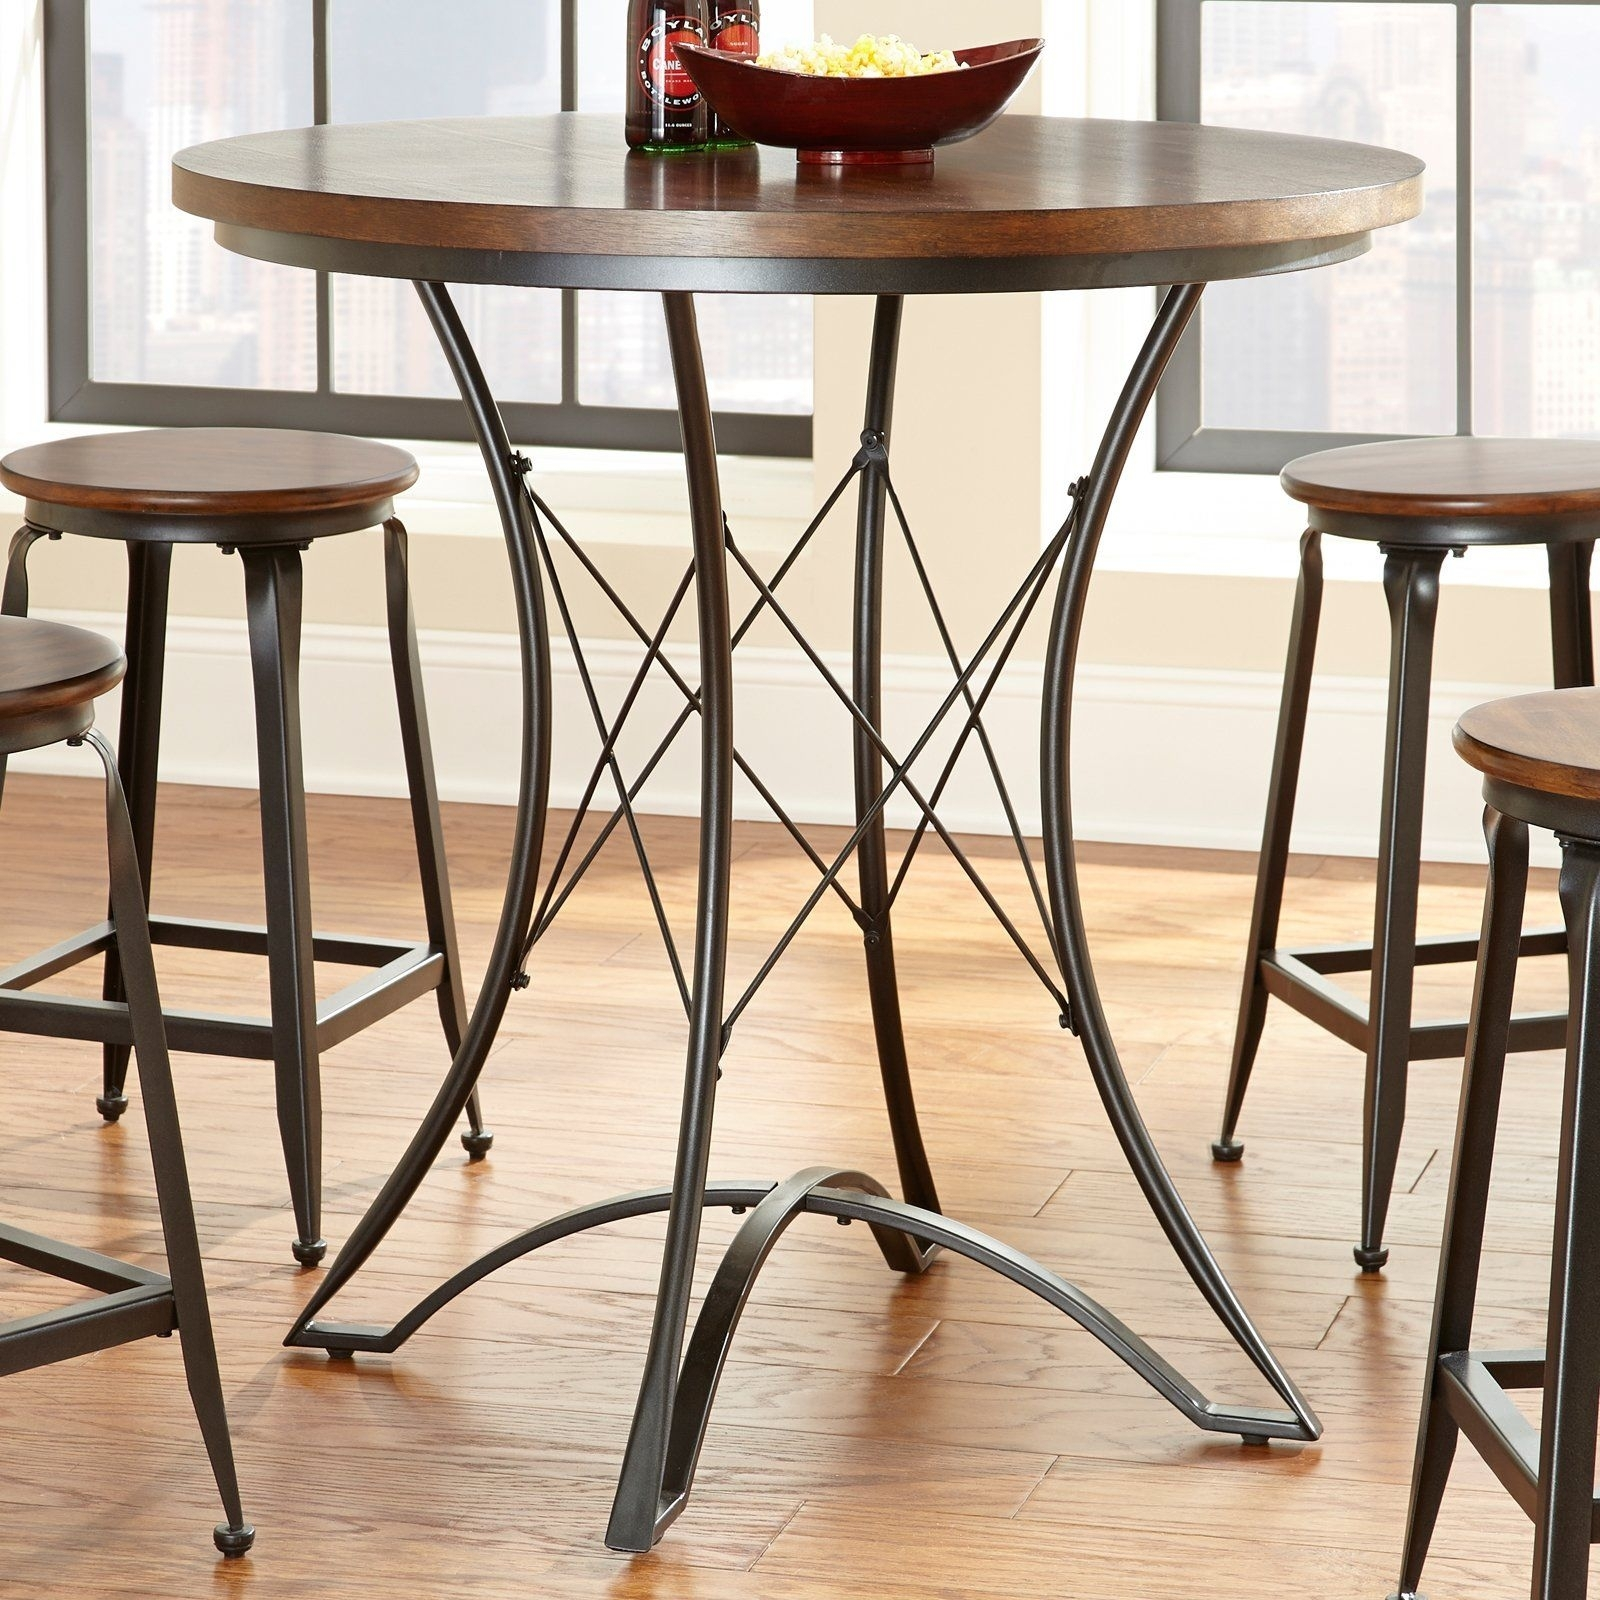 Picture of: Round Bar Height Dining Table Ideas On Foter